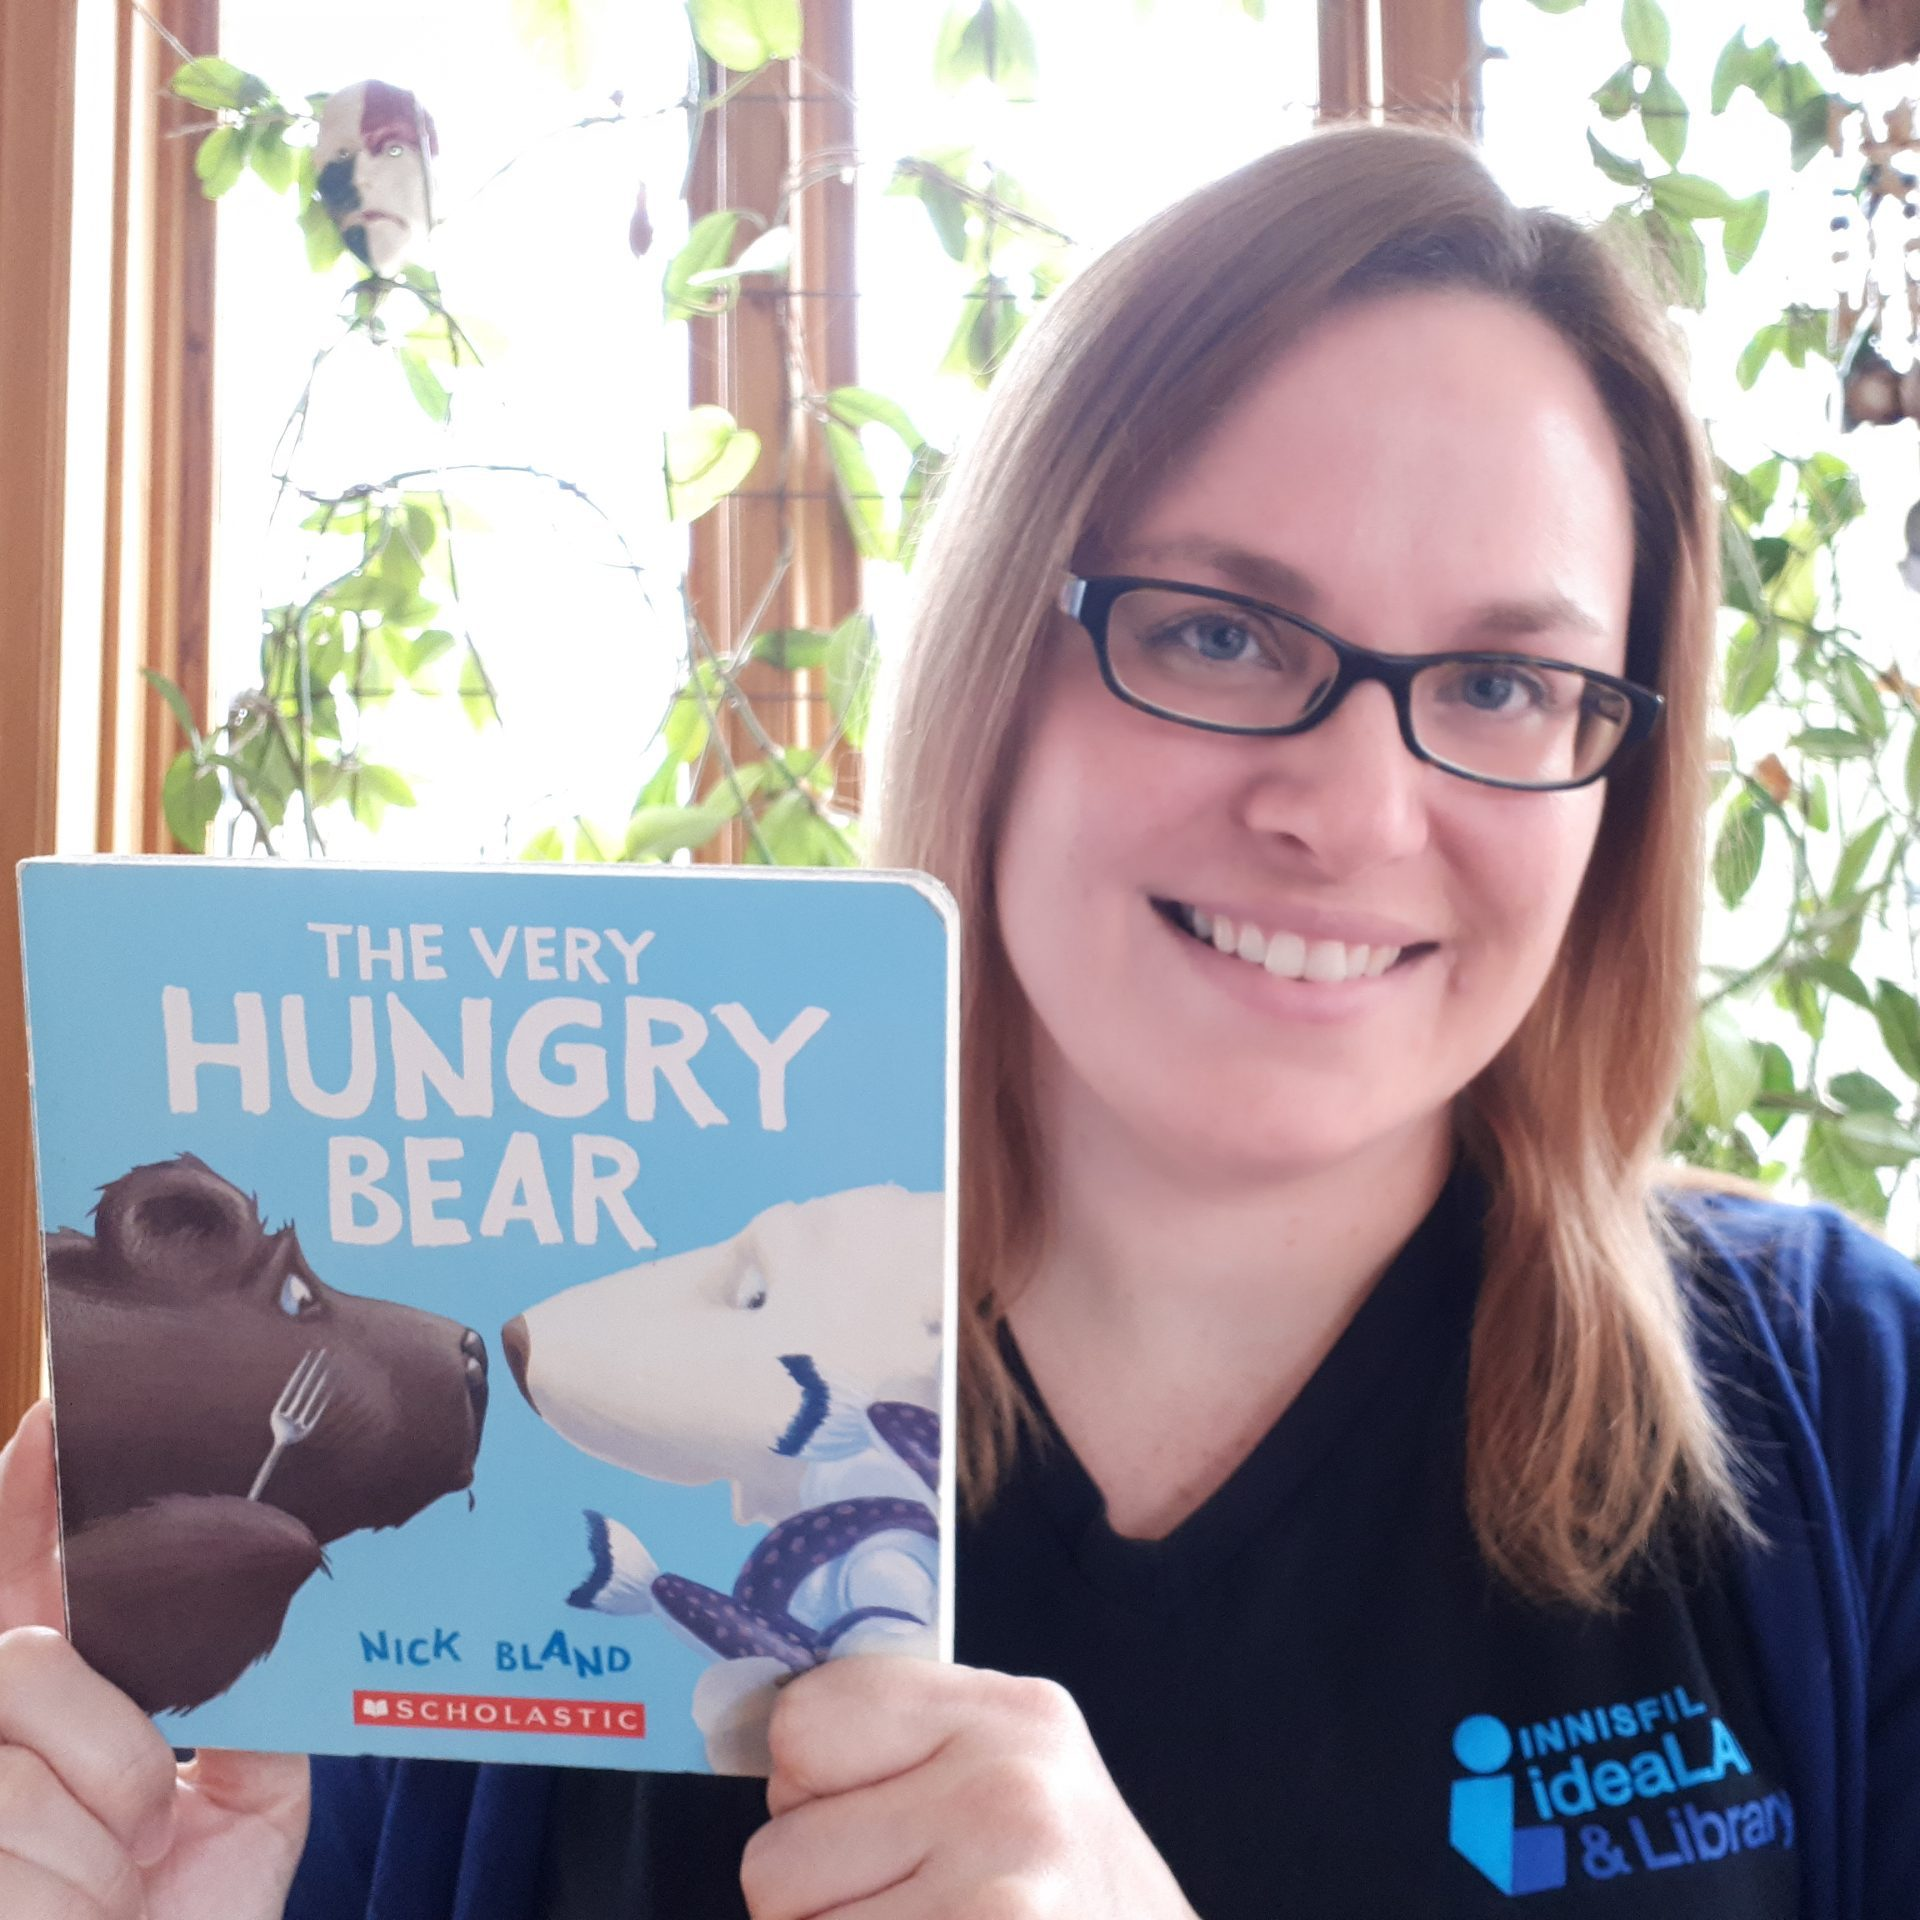 Storytime: The Very Hungry Bear